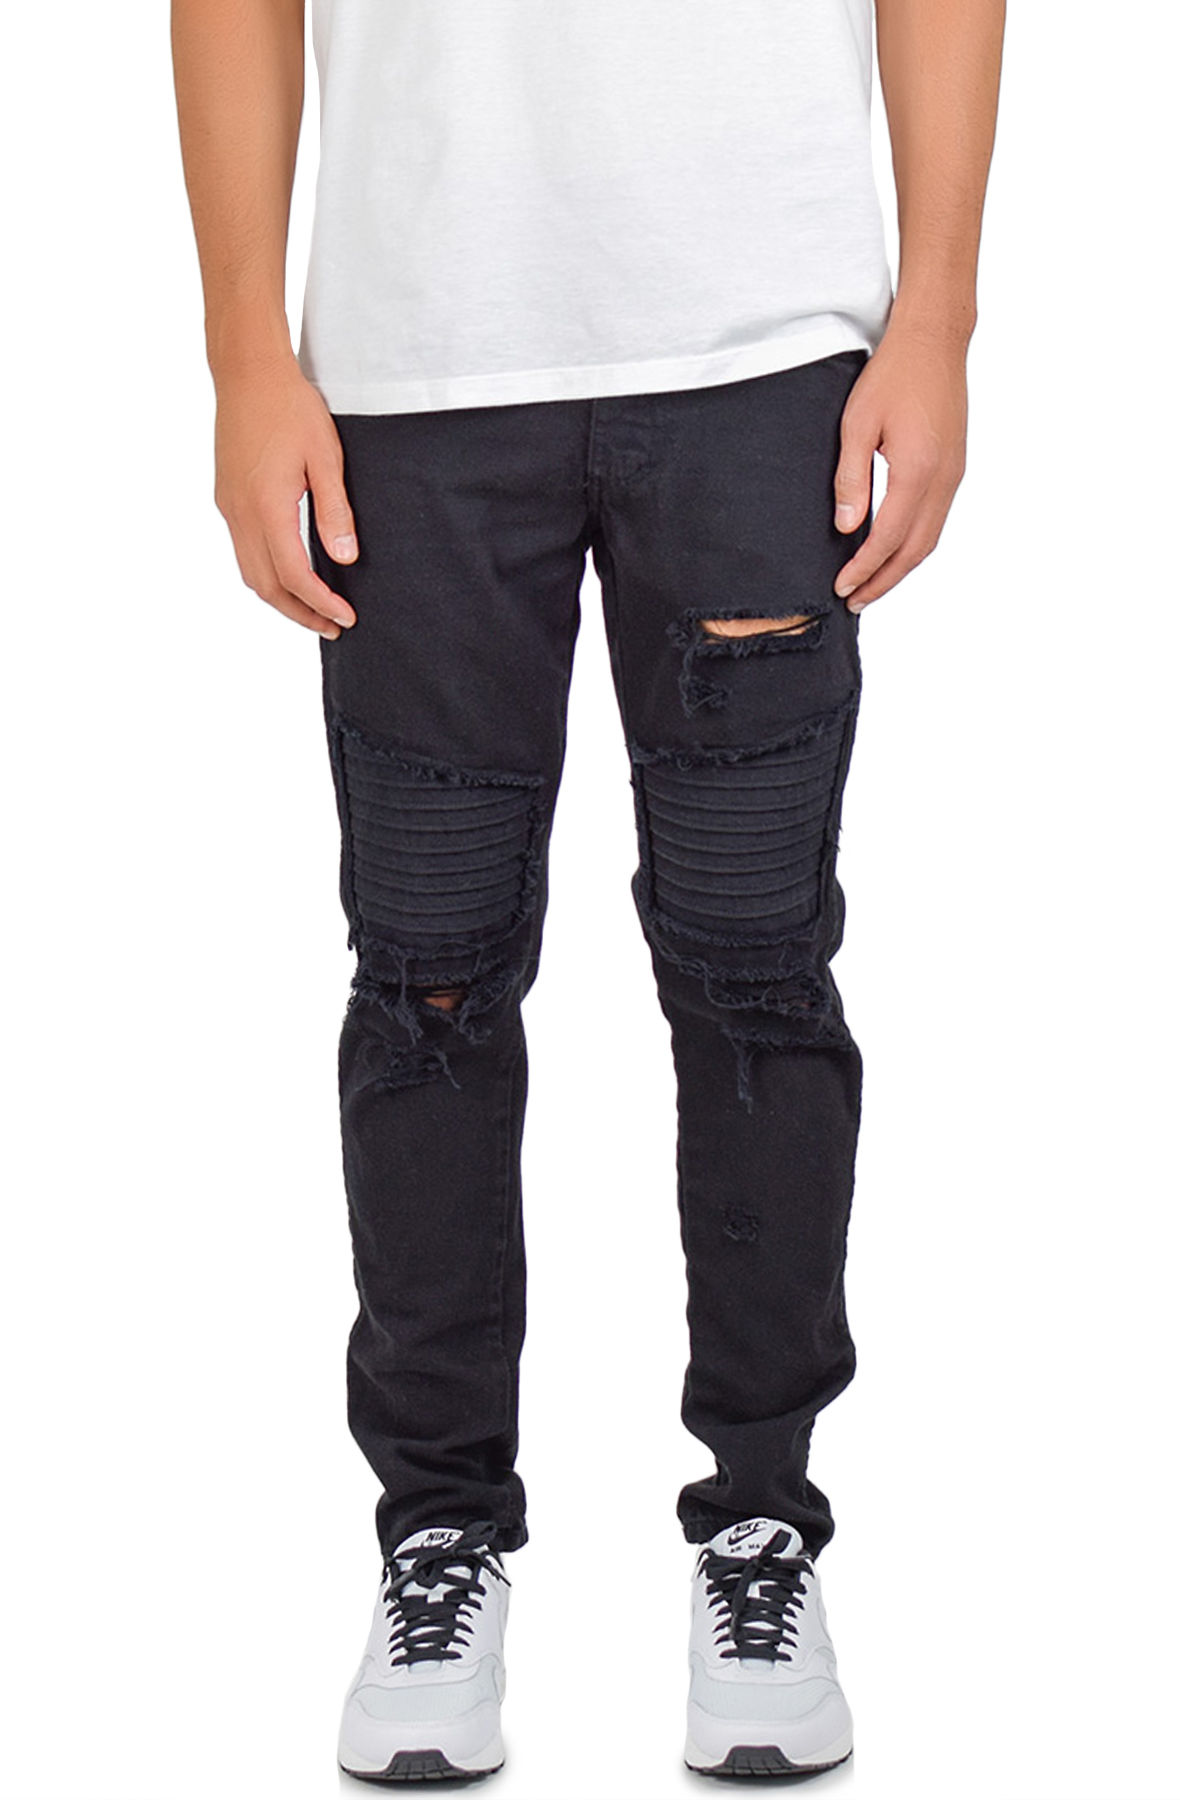 Image of The Ripped Patched Moto Jeans in Black